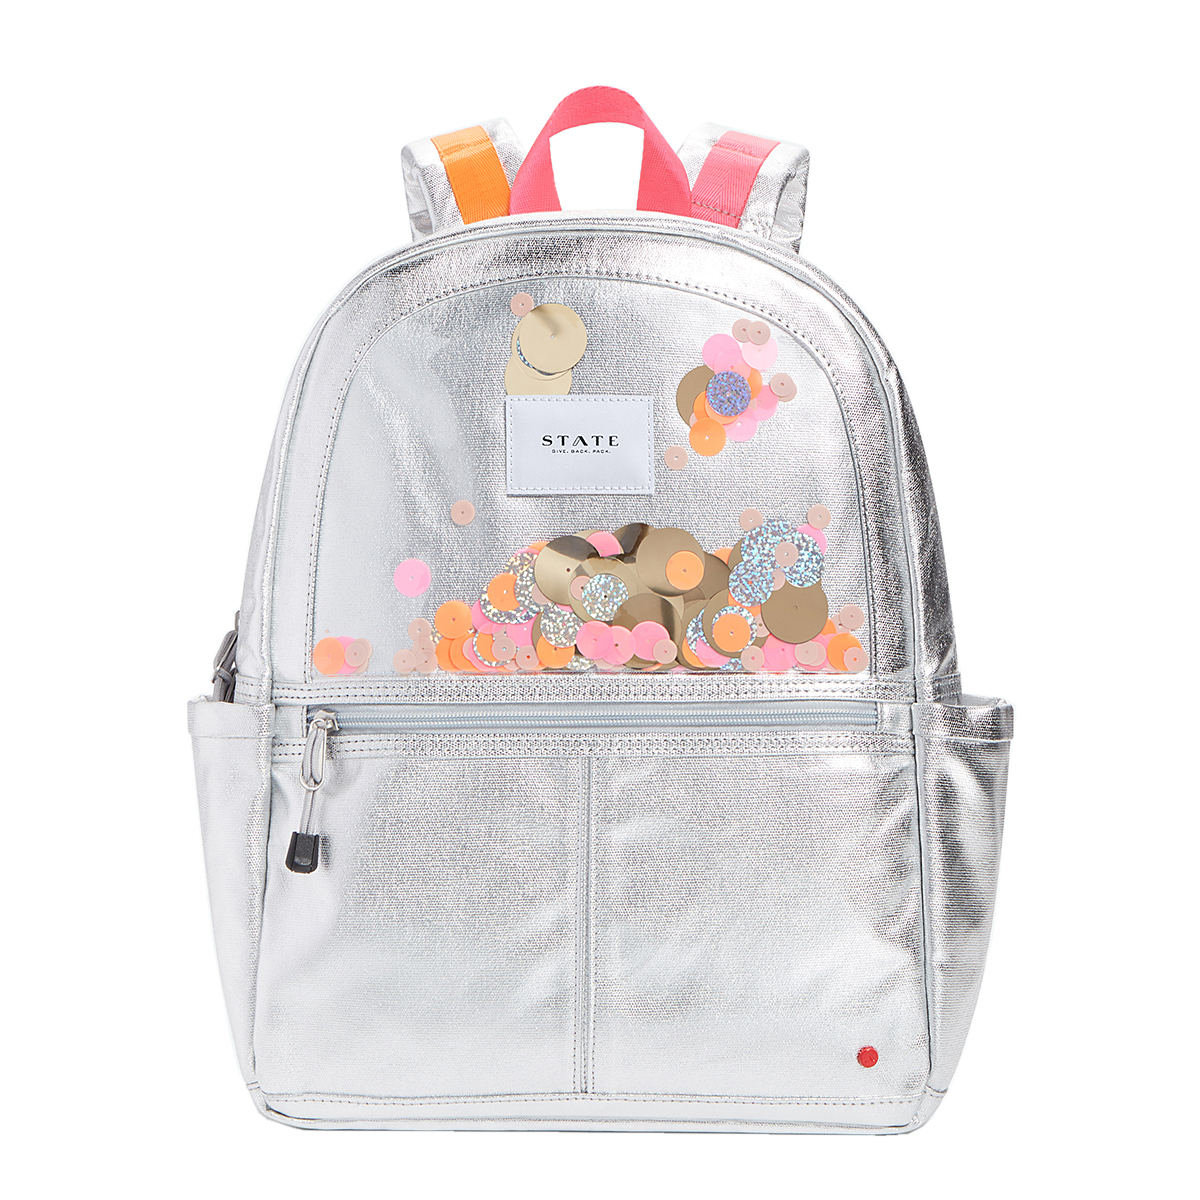 State Bags Kane Backpack in Metallic Sequin